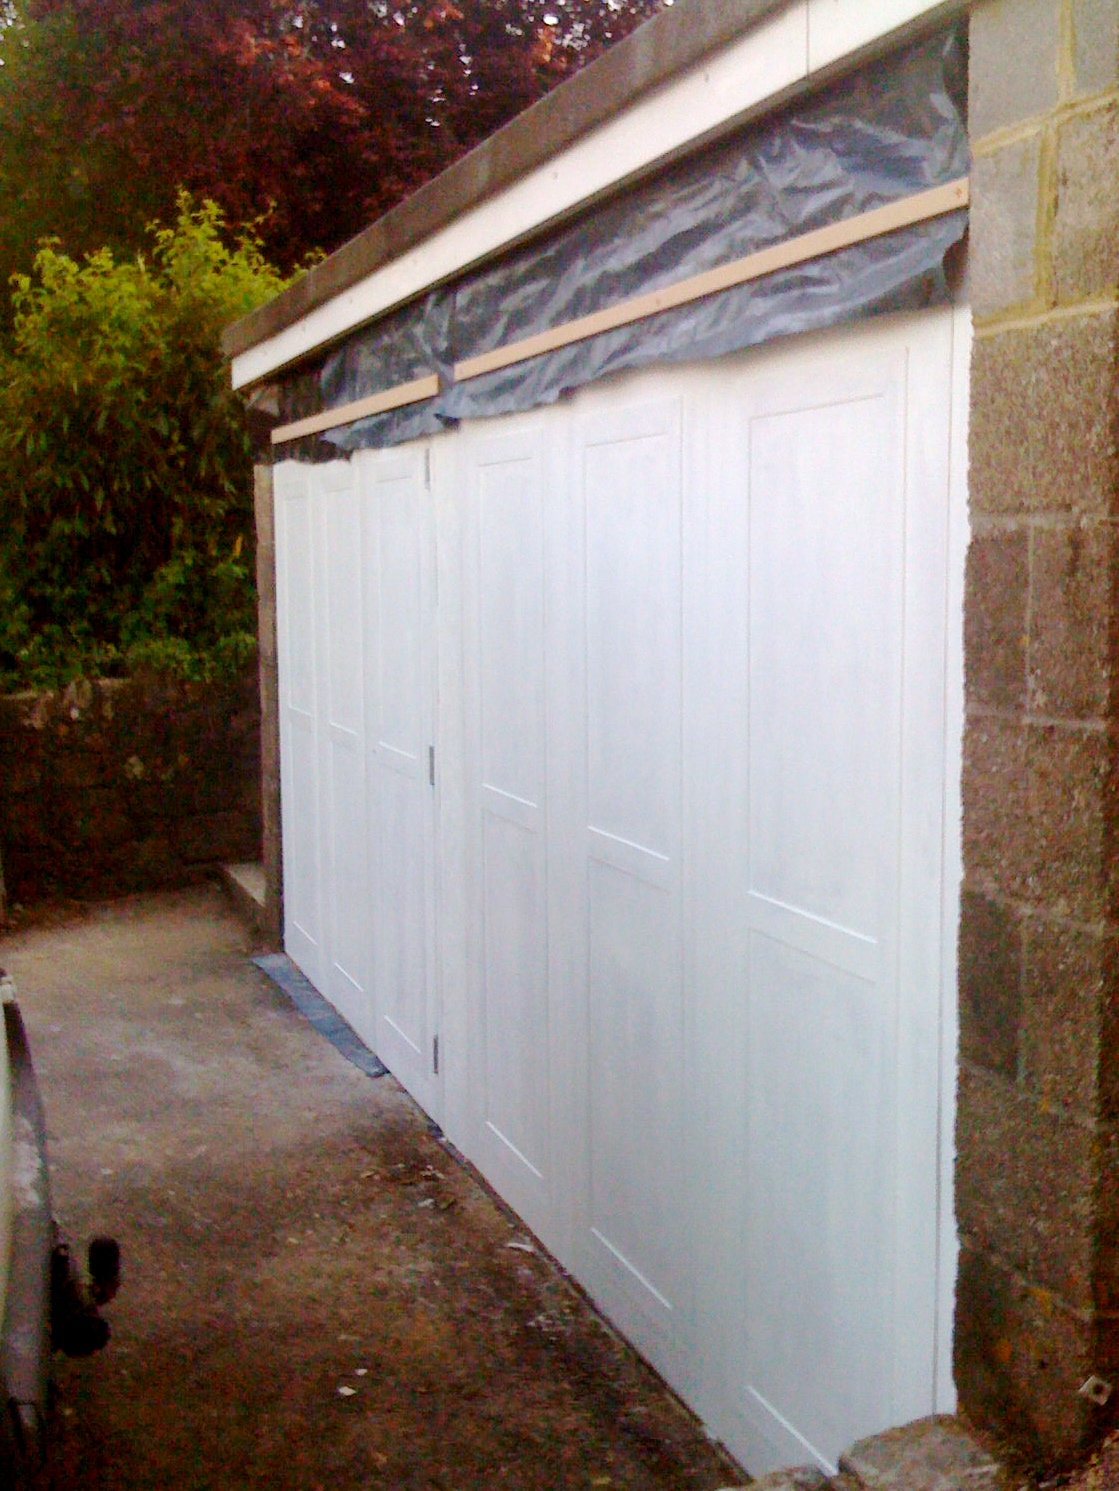 And here's the finished panels with the first coat of white Sadolin applied.